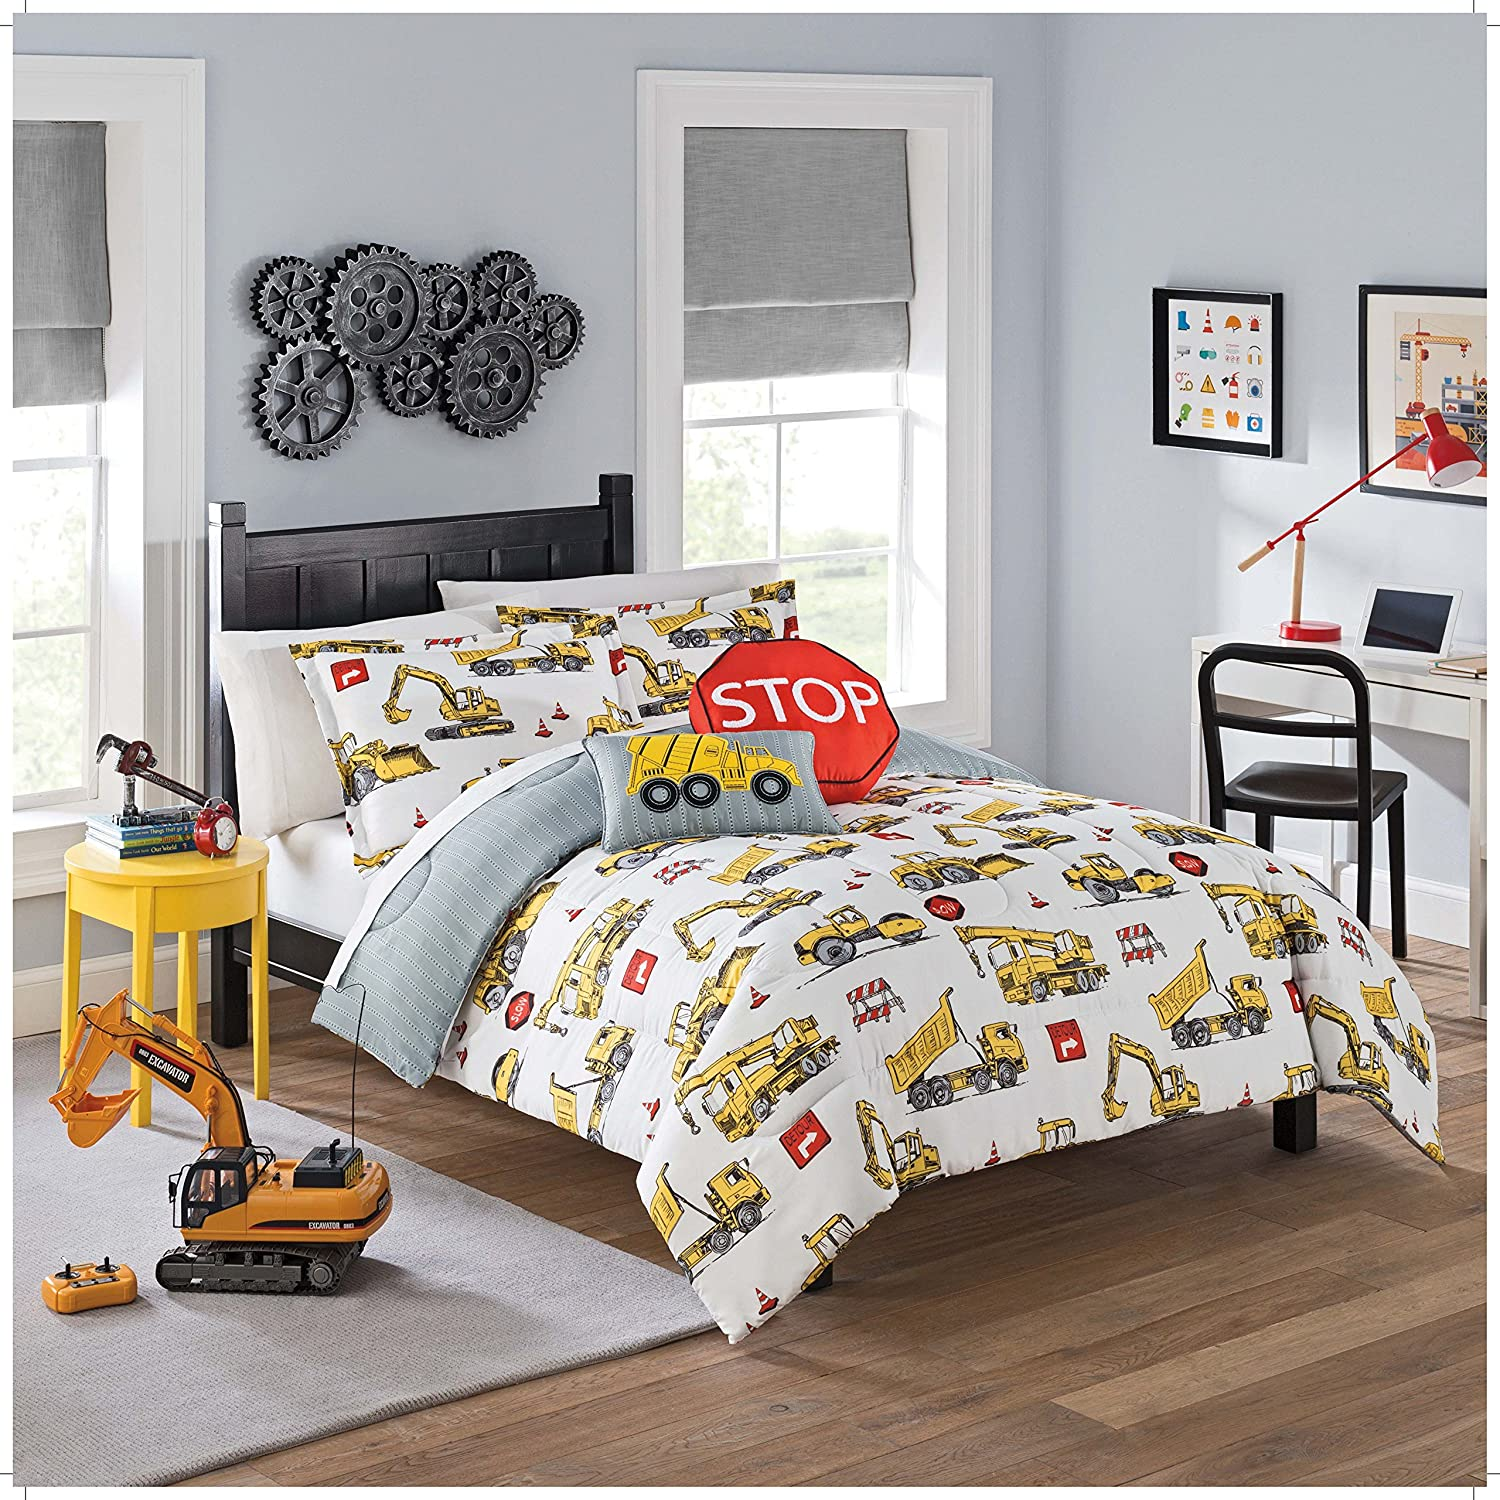 WAVERLY Kids Under Construction Reversible Bedding Collection, Twin, Multicolor